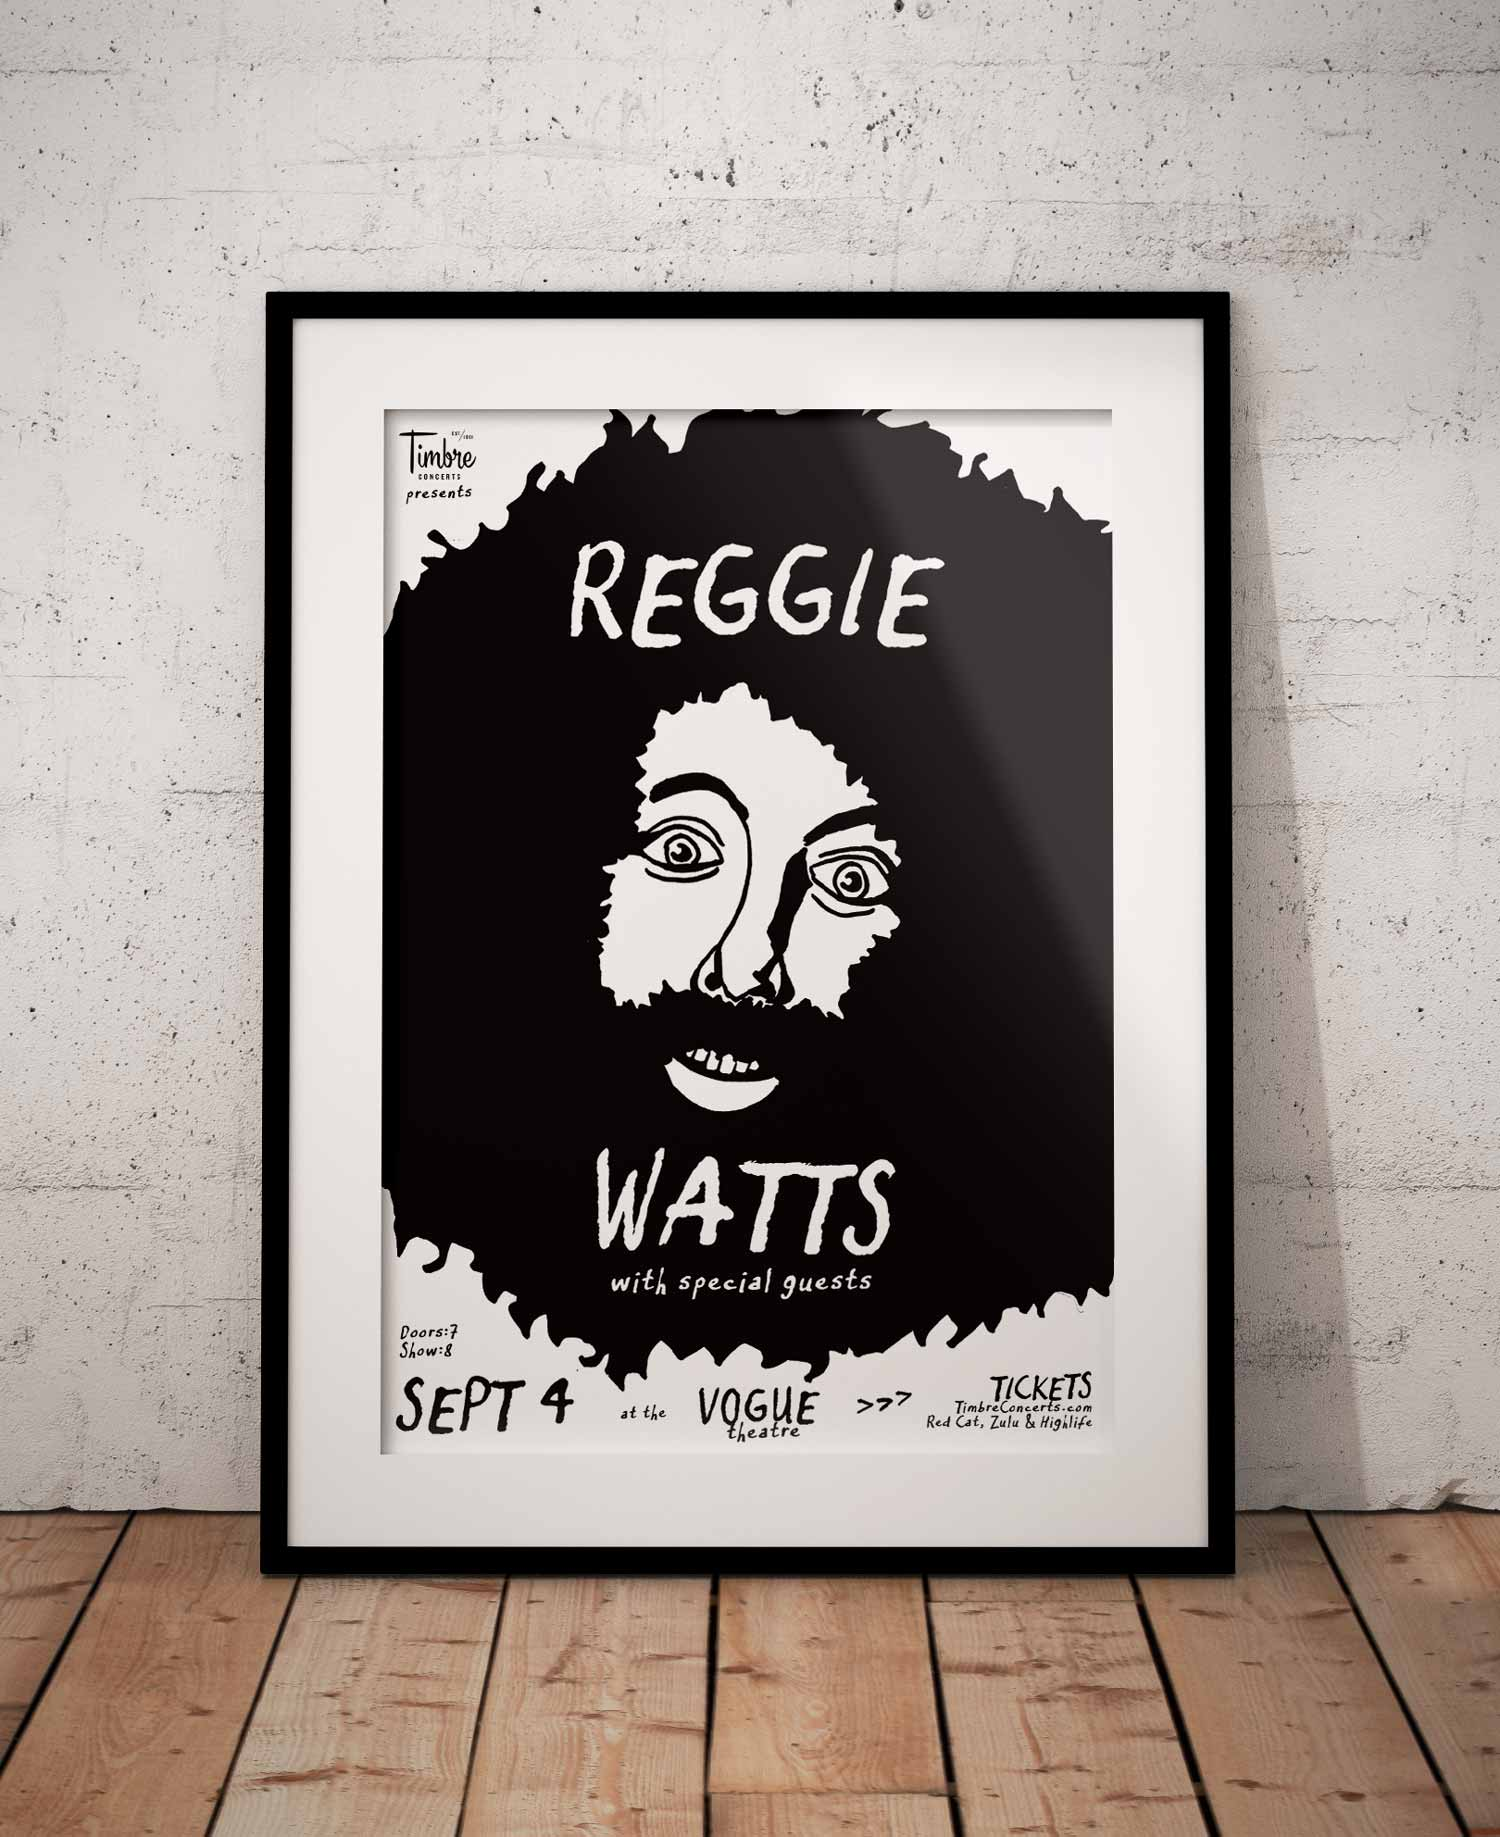 Illustration and graphic design for comedian and musician Reggie Watts